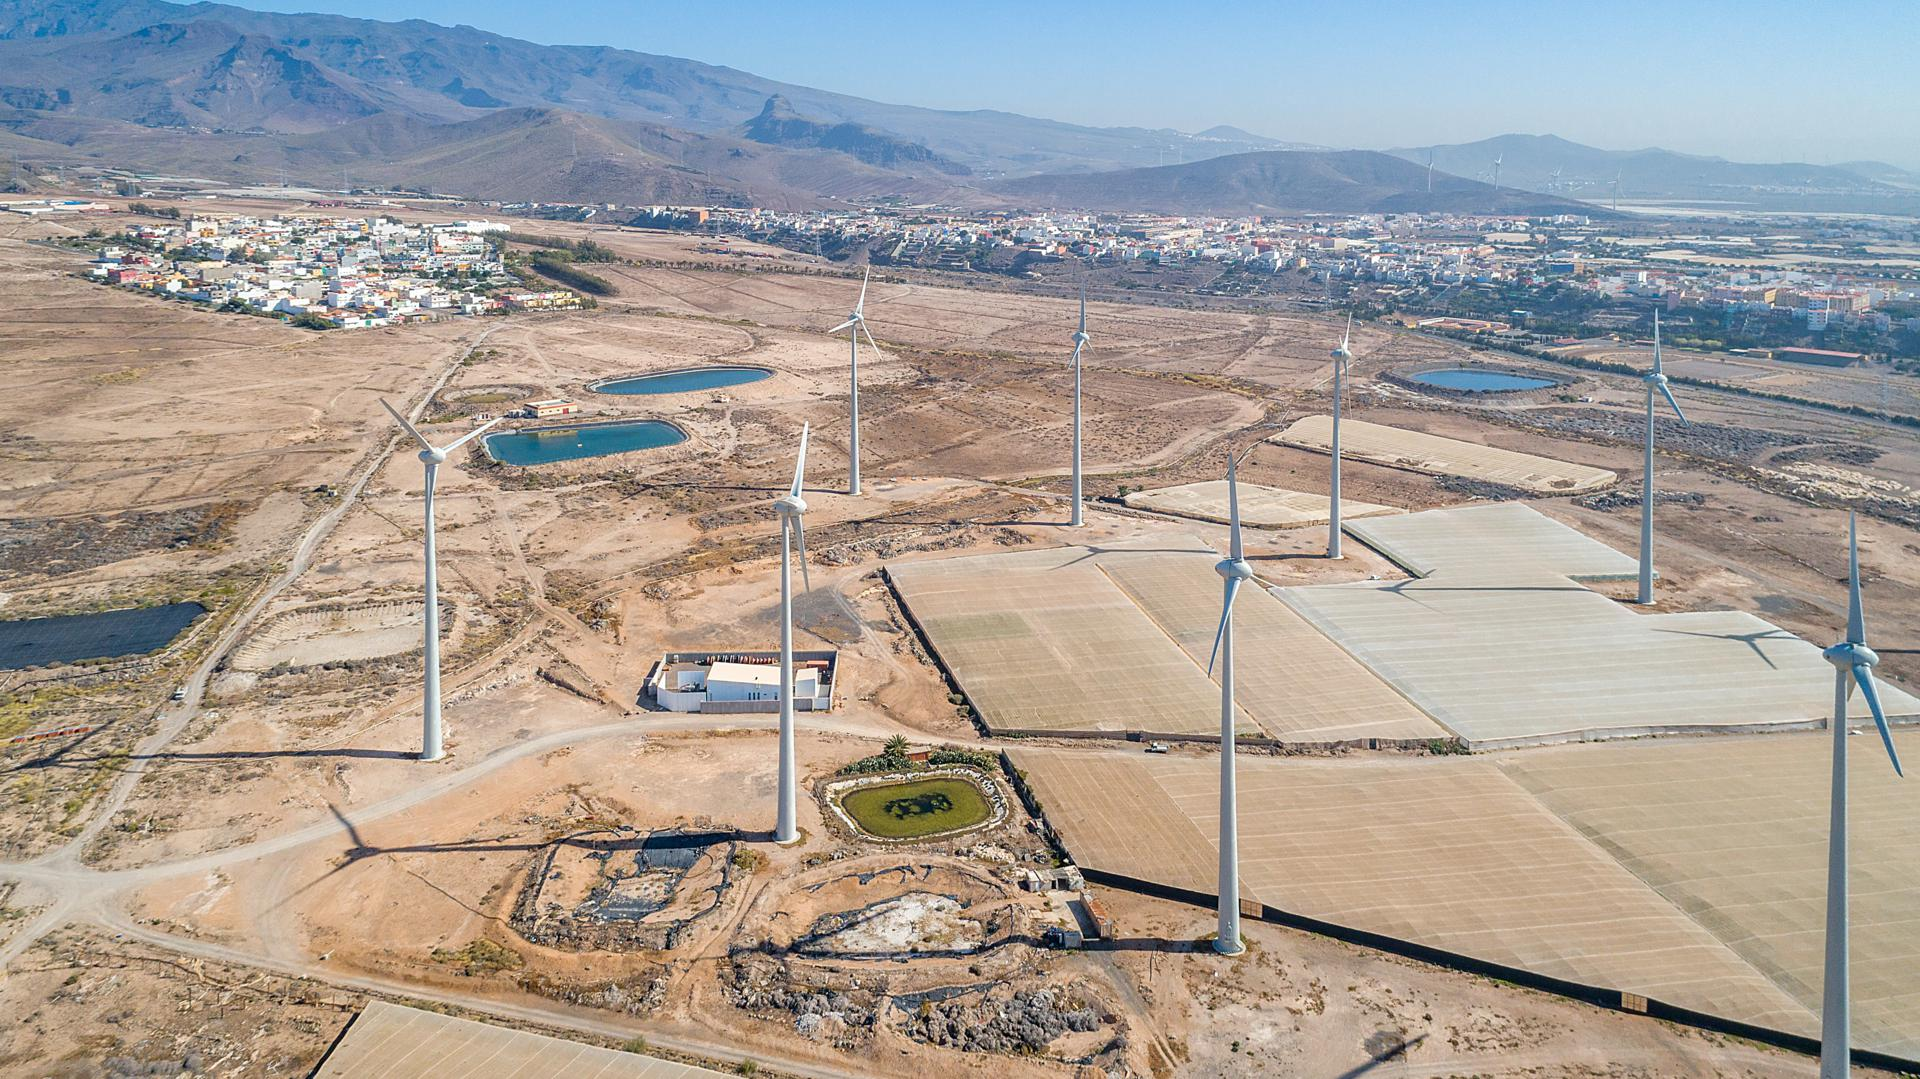 Ecoener is the most successful bidder in the Canary Islands wind energy tender process, securing 31 MW of capacity